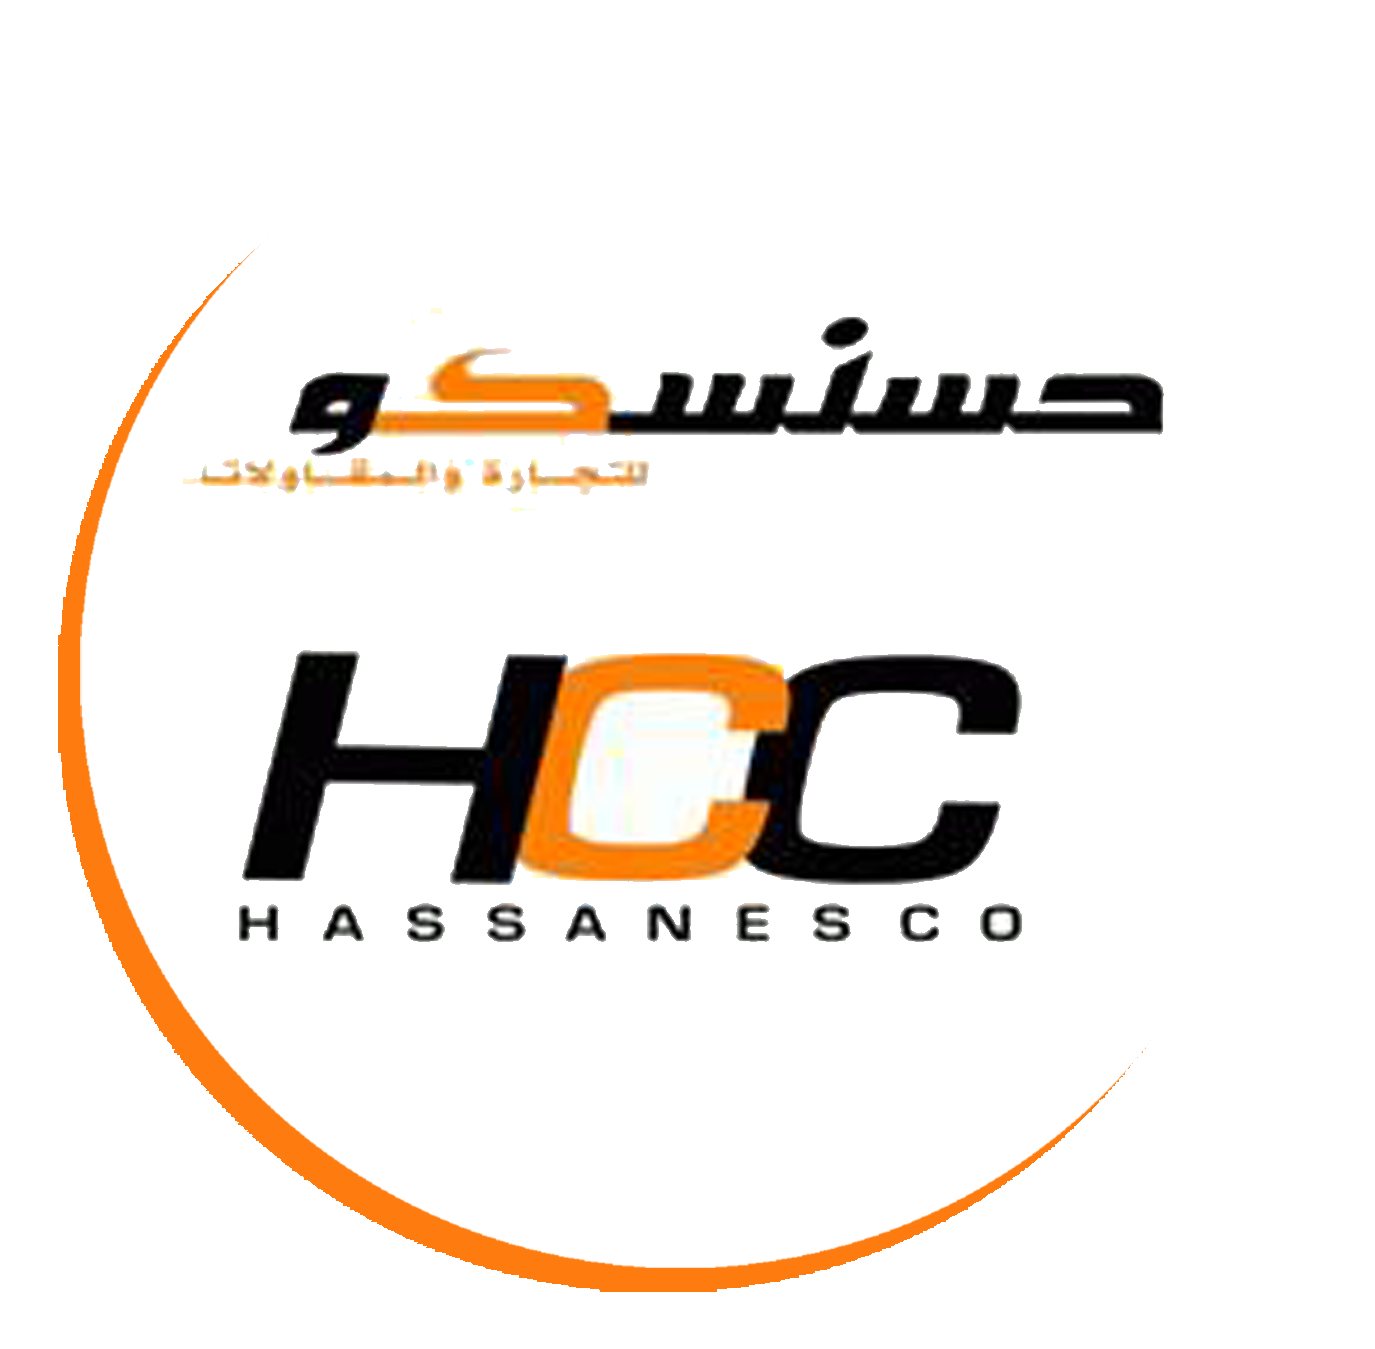 Hassanesco Trading & Contracting